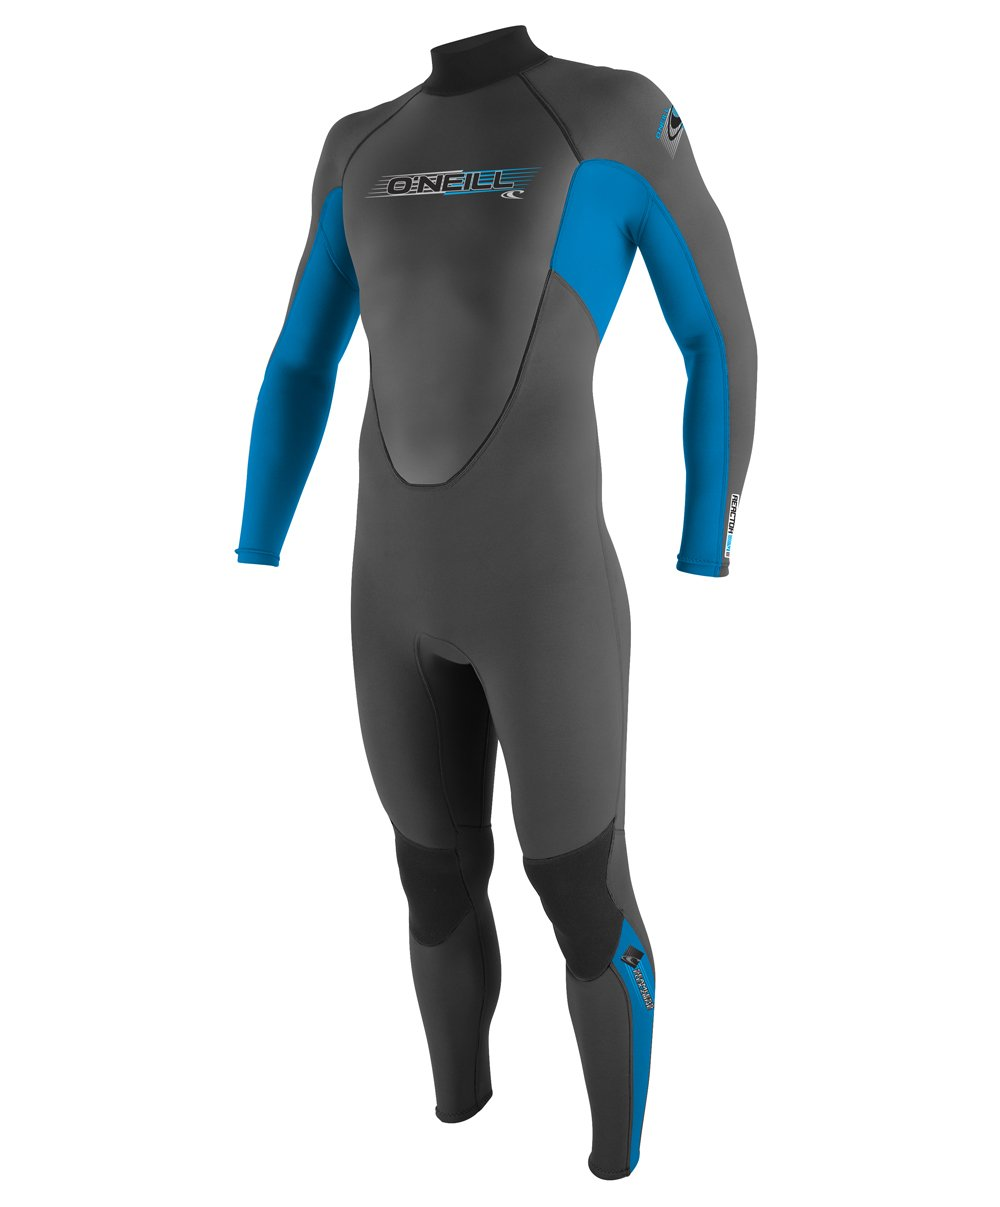 O'Neill Youth Reactor 3/2mm Back Zip Full Wetsuit, Graphite/Bright Blue/Graphite, 10